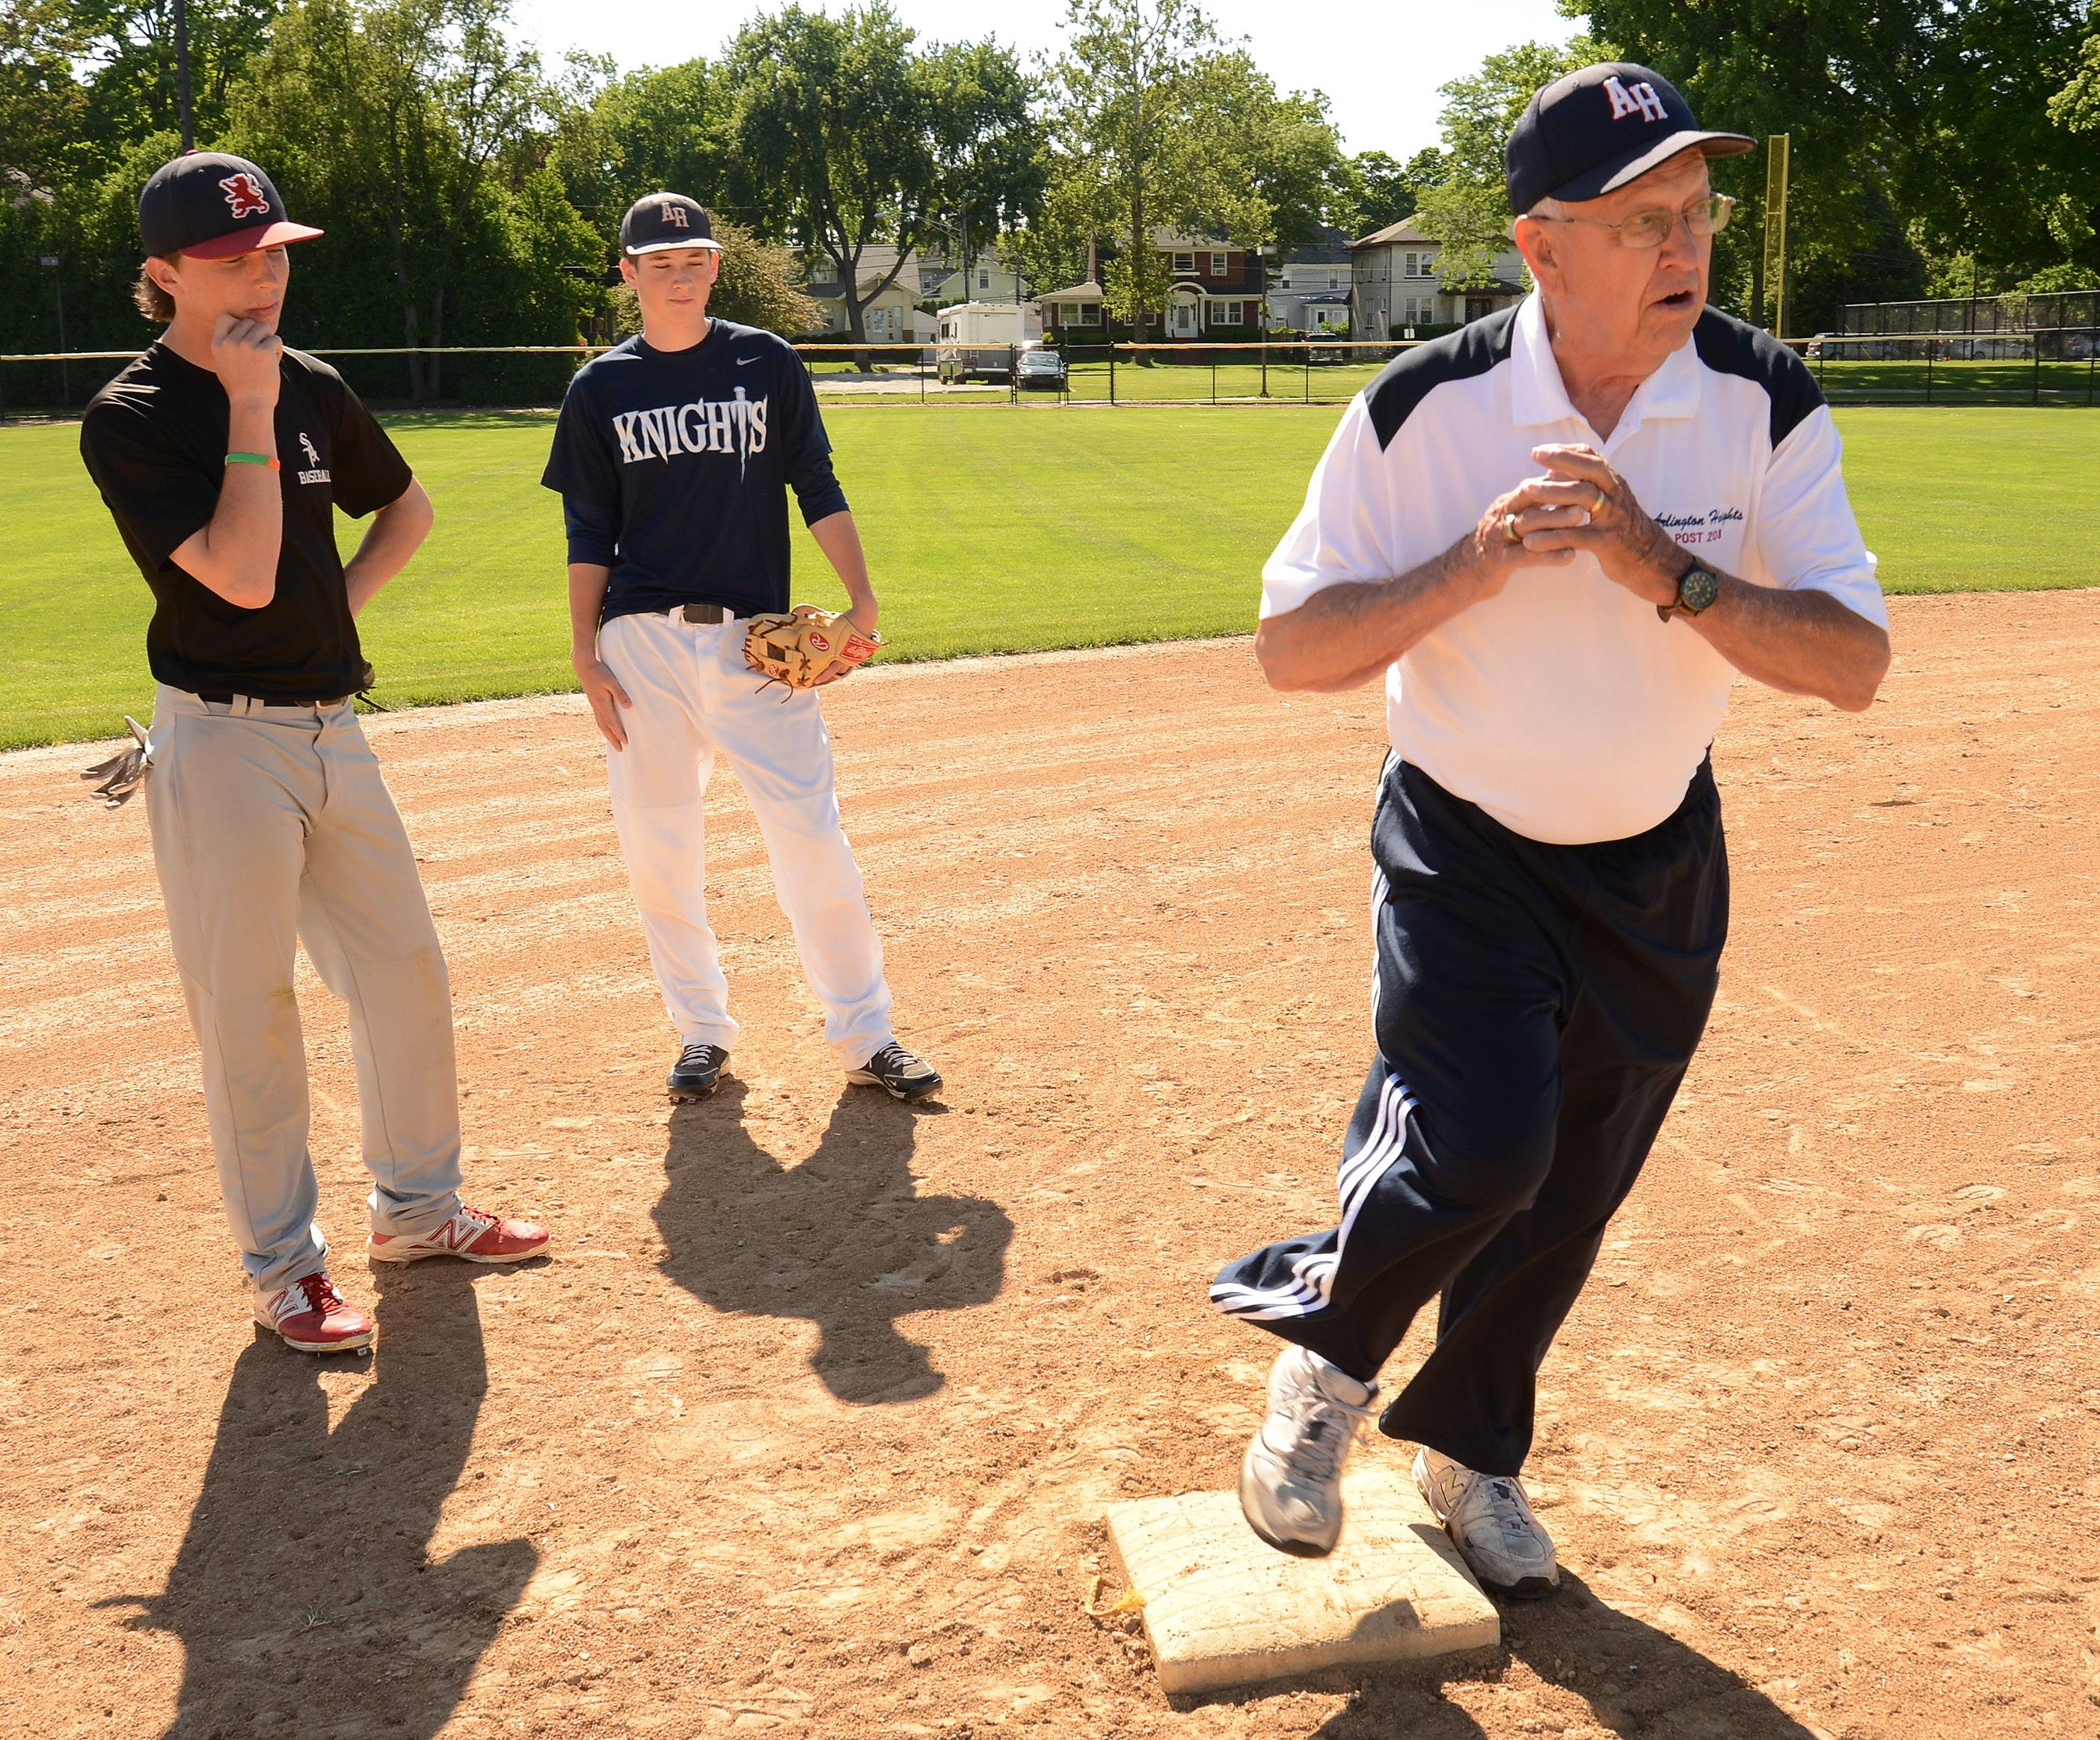 Lloyd Meyer, who is starting his 61st year of coaching American Legion baseball, shows Matt Darling, left, and Grant Gerdes how to turn a double play.